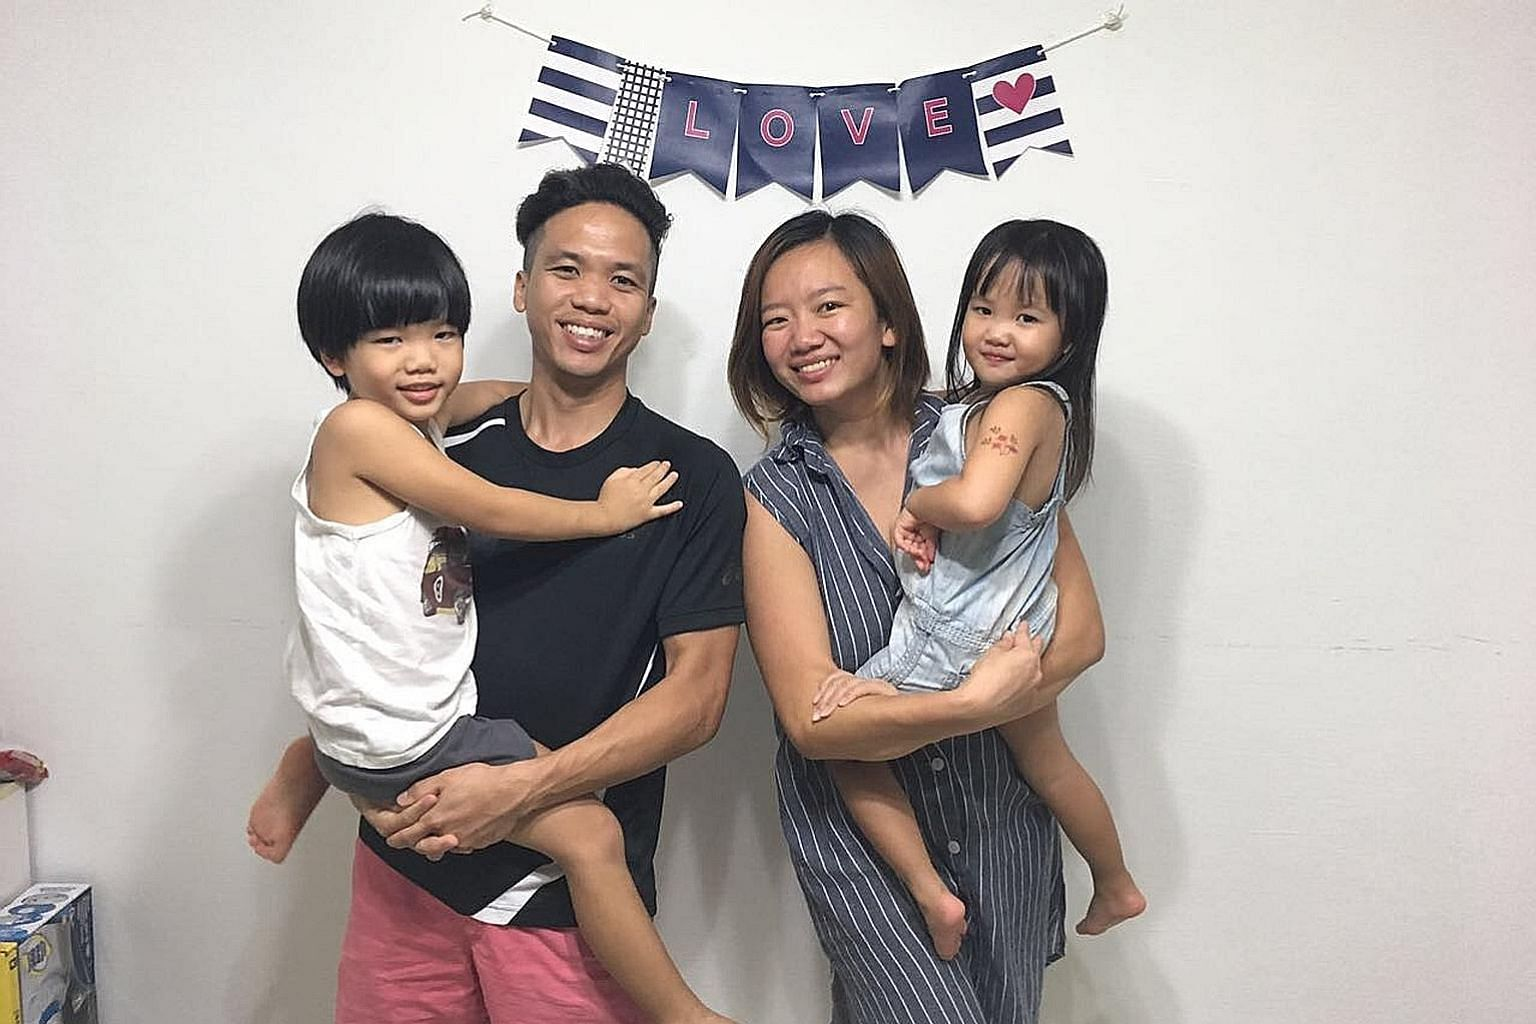 Mrs Rachel Fong with her husband Fong Xiongkun and their children (from far left) Victoria, Mark and Micah. Mr Kenny Leong, his wife Sophia Leong, son Emmanuel and daughter Elissa believe in apologising to one another after a conflict.